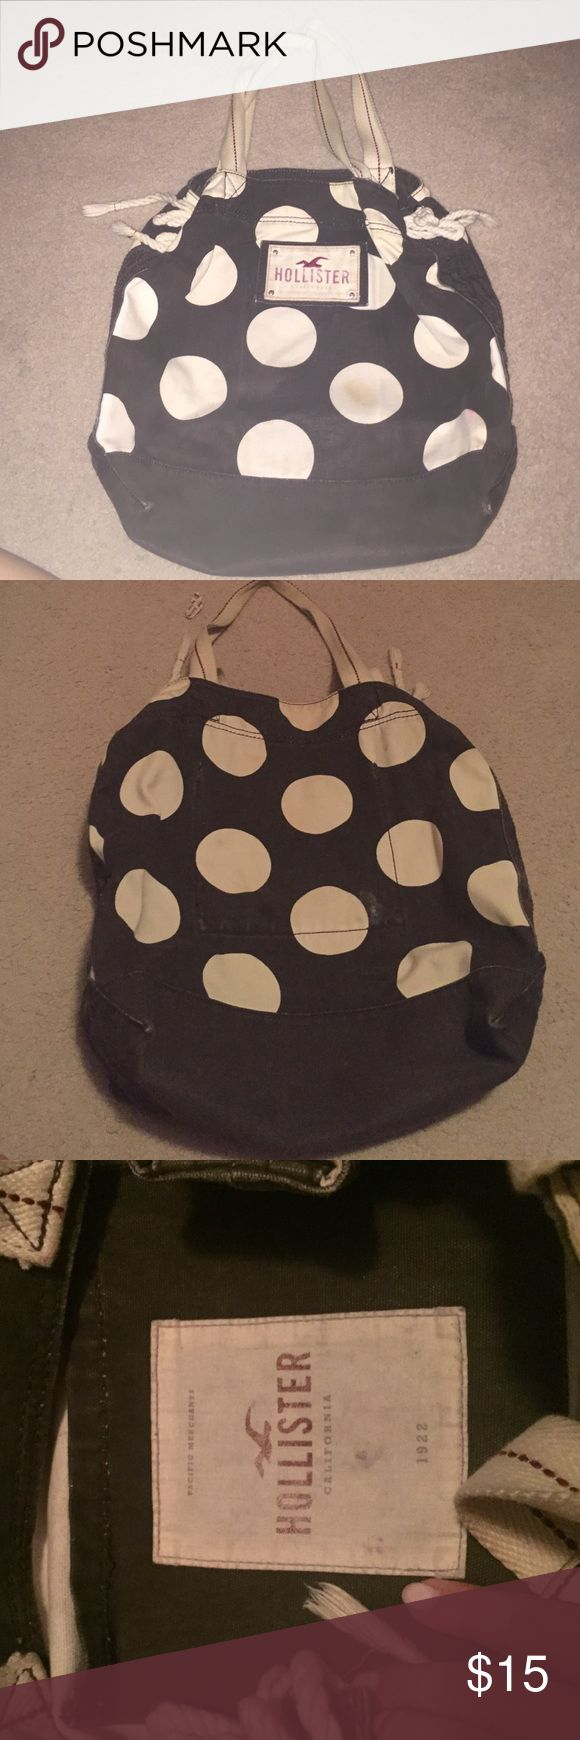 Hollister Tote Bag Gently used, great size bag! Hollister Bags Totes